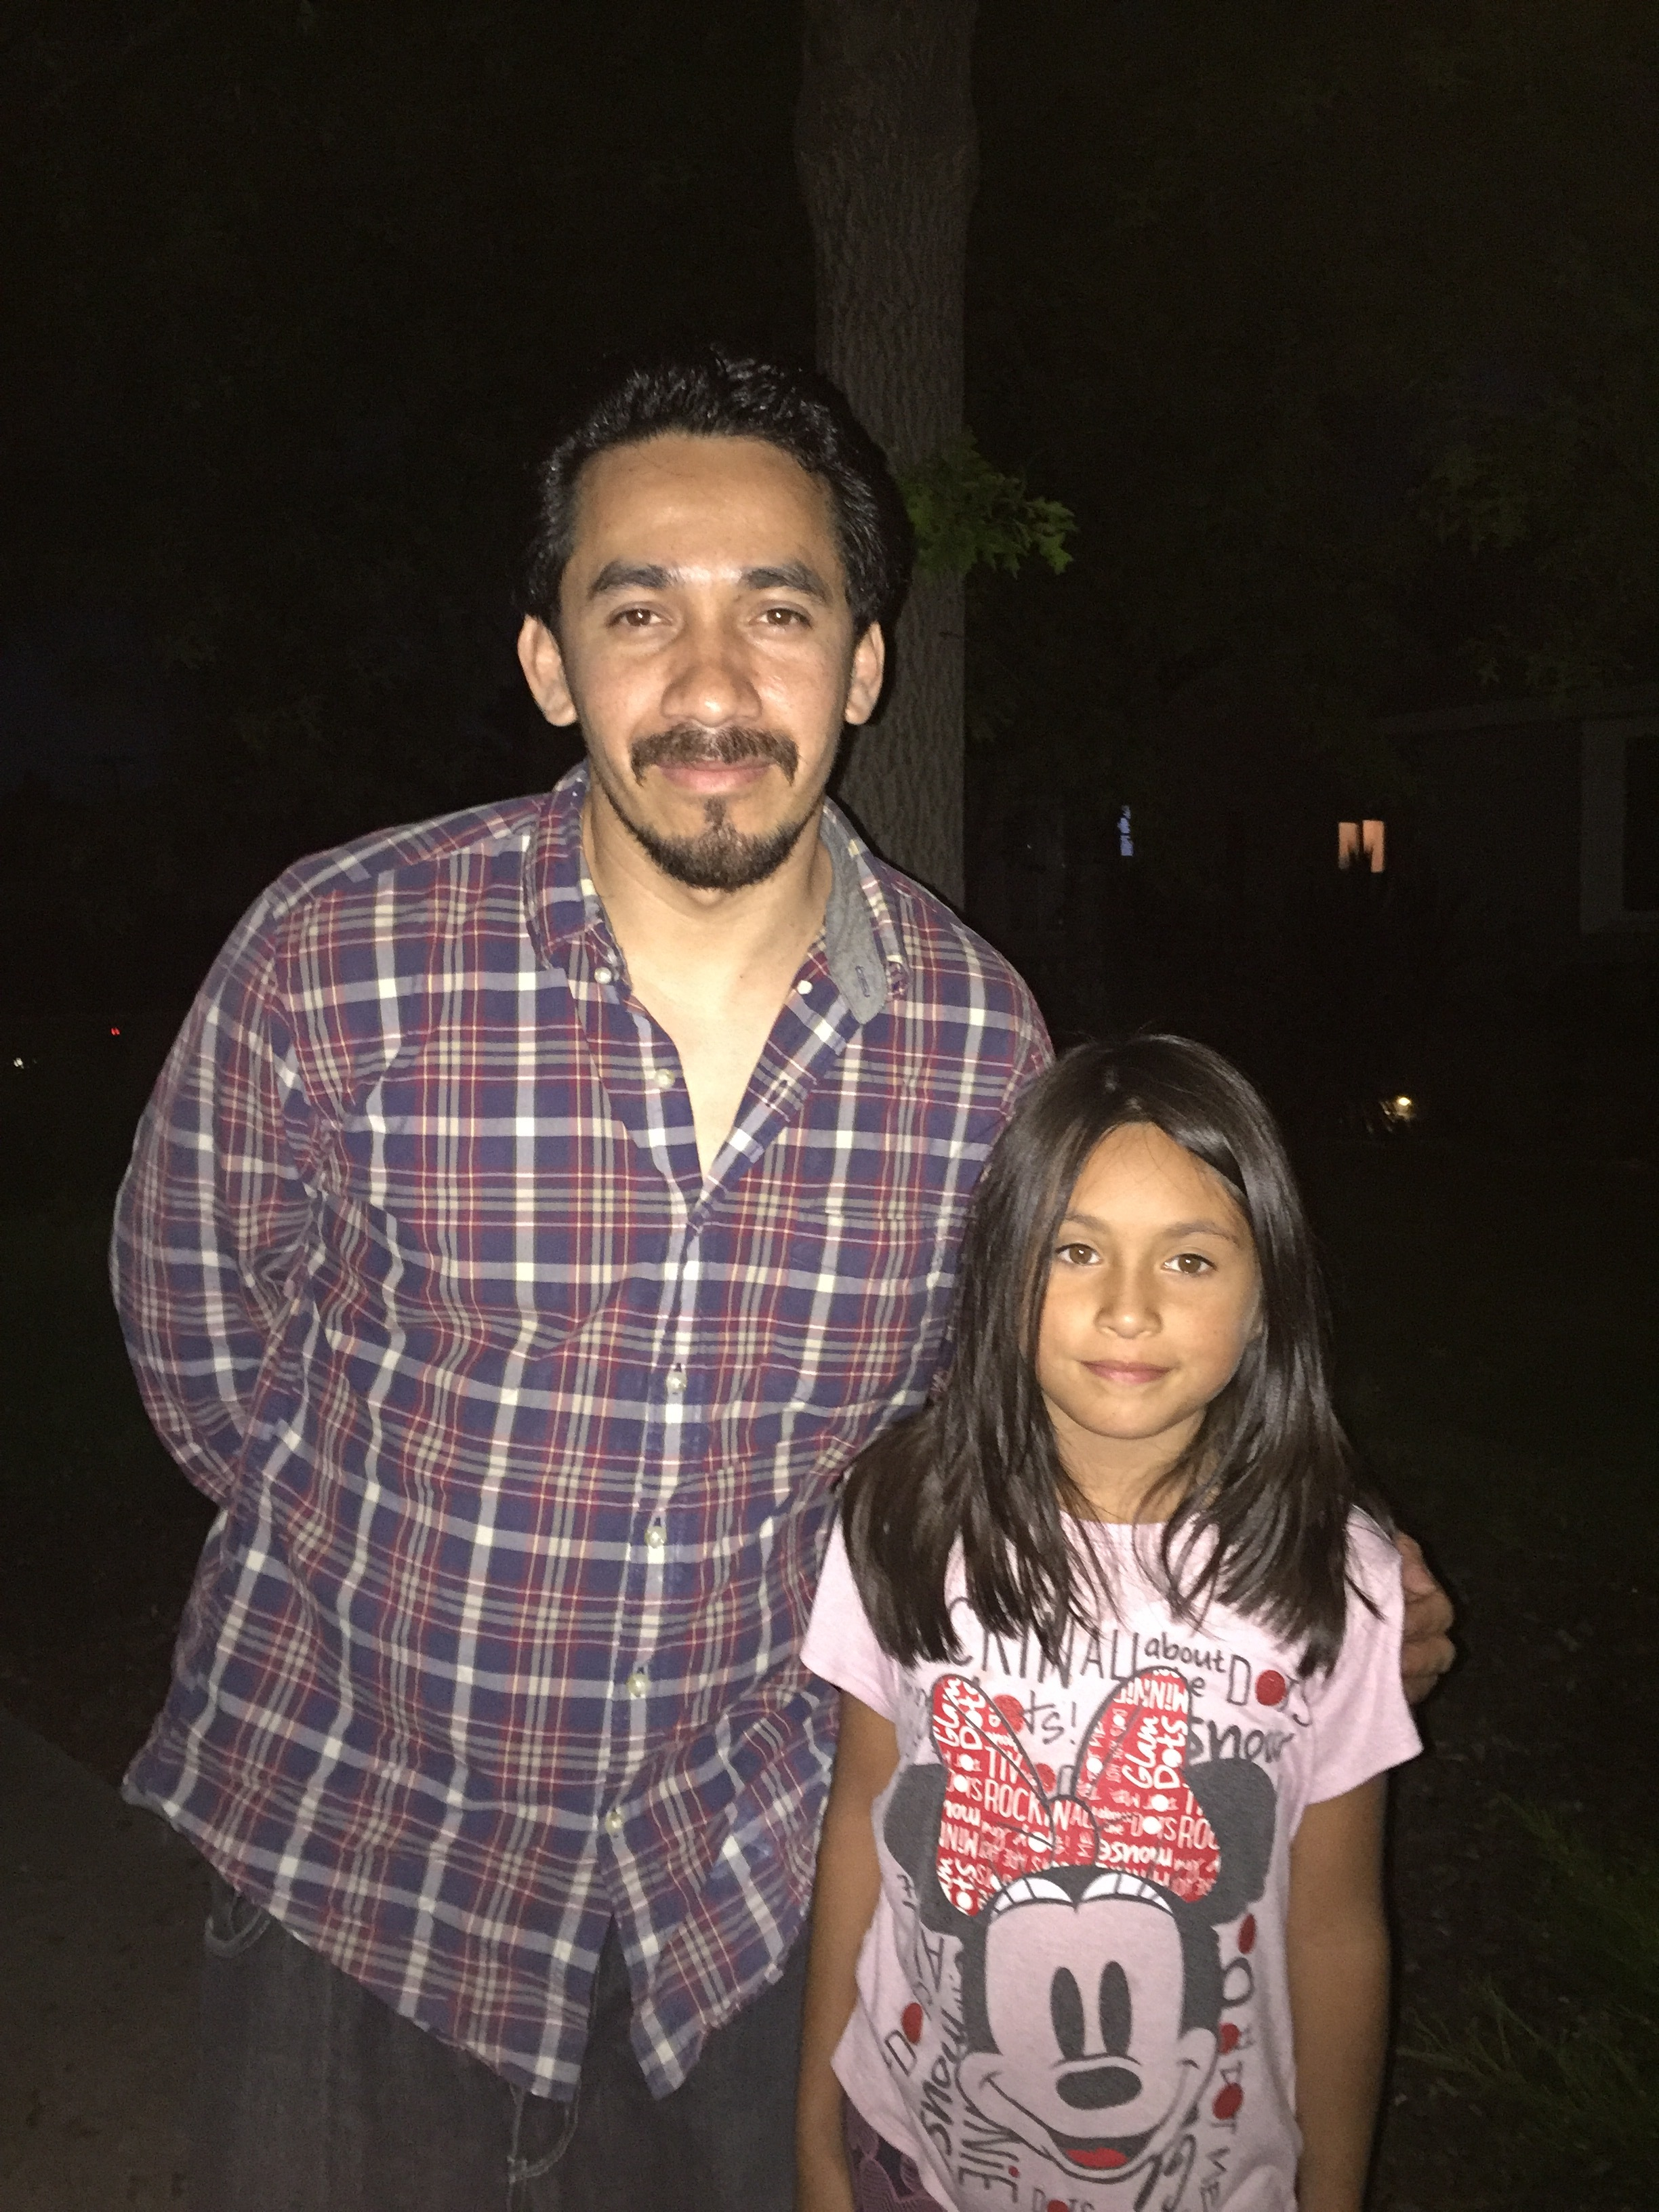 JOSÉ - José is a father, who for nine months, was detained by ICE and unable to care for his daughter. Jose moved to the U.S. when he was 15-years-old--more than two decades ago.He was granted a $20,000bond but raising that amount is personally out of his reach. As a result, he was stuck in detention and unable to defend himself or provide crucial evidence to a judge that could allow him to obtain permanent legal status.After nine months, we were able to pay most of José's bond and gain his release. Now José is staying with his cousin while he prepares for his hearing in July. He is able to see his 9-year-old daughter and collect evidence to try to stay in the United States with his daughter and community of more than two decades.